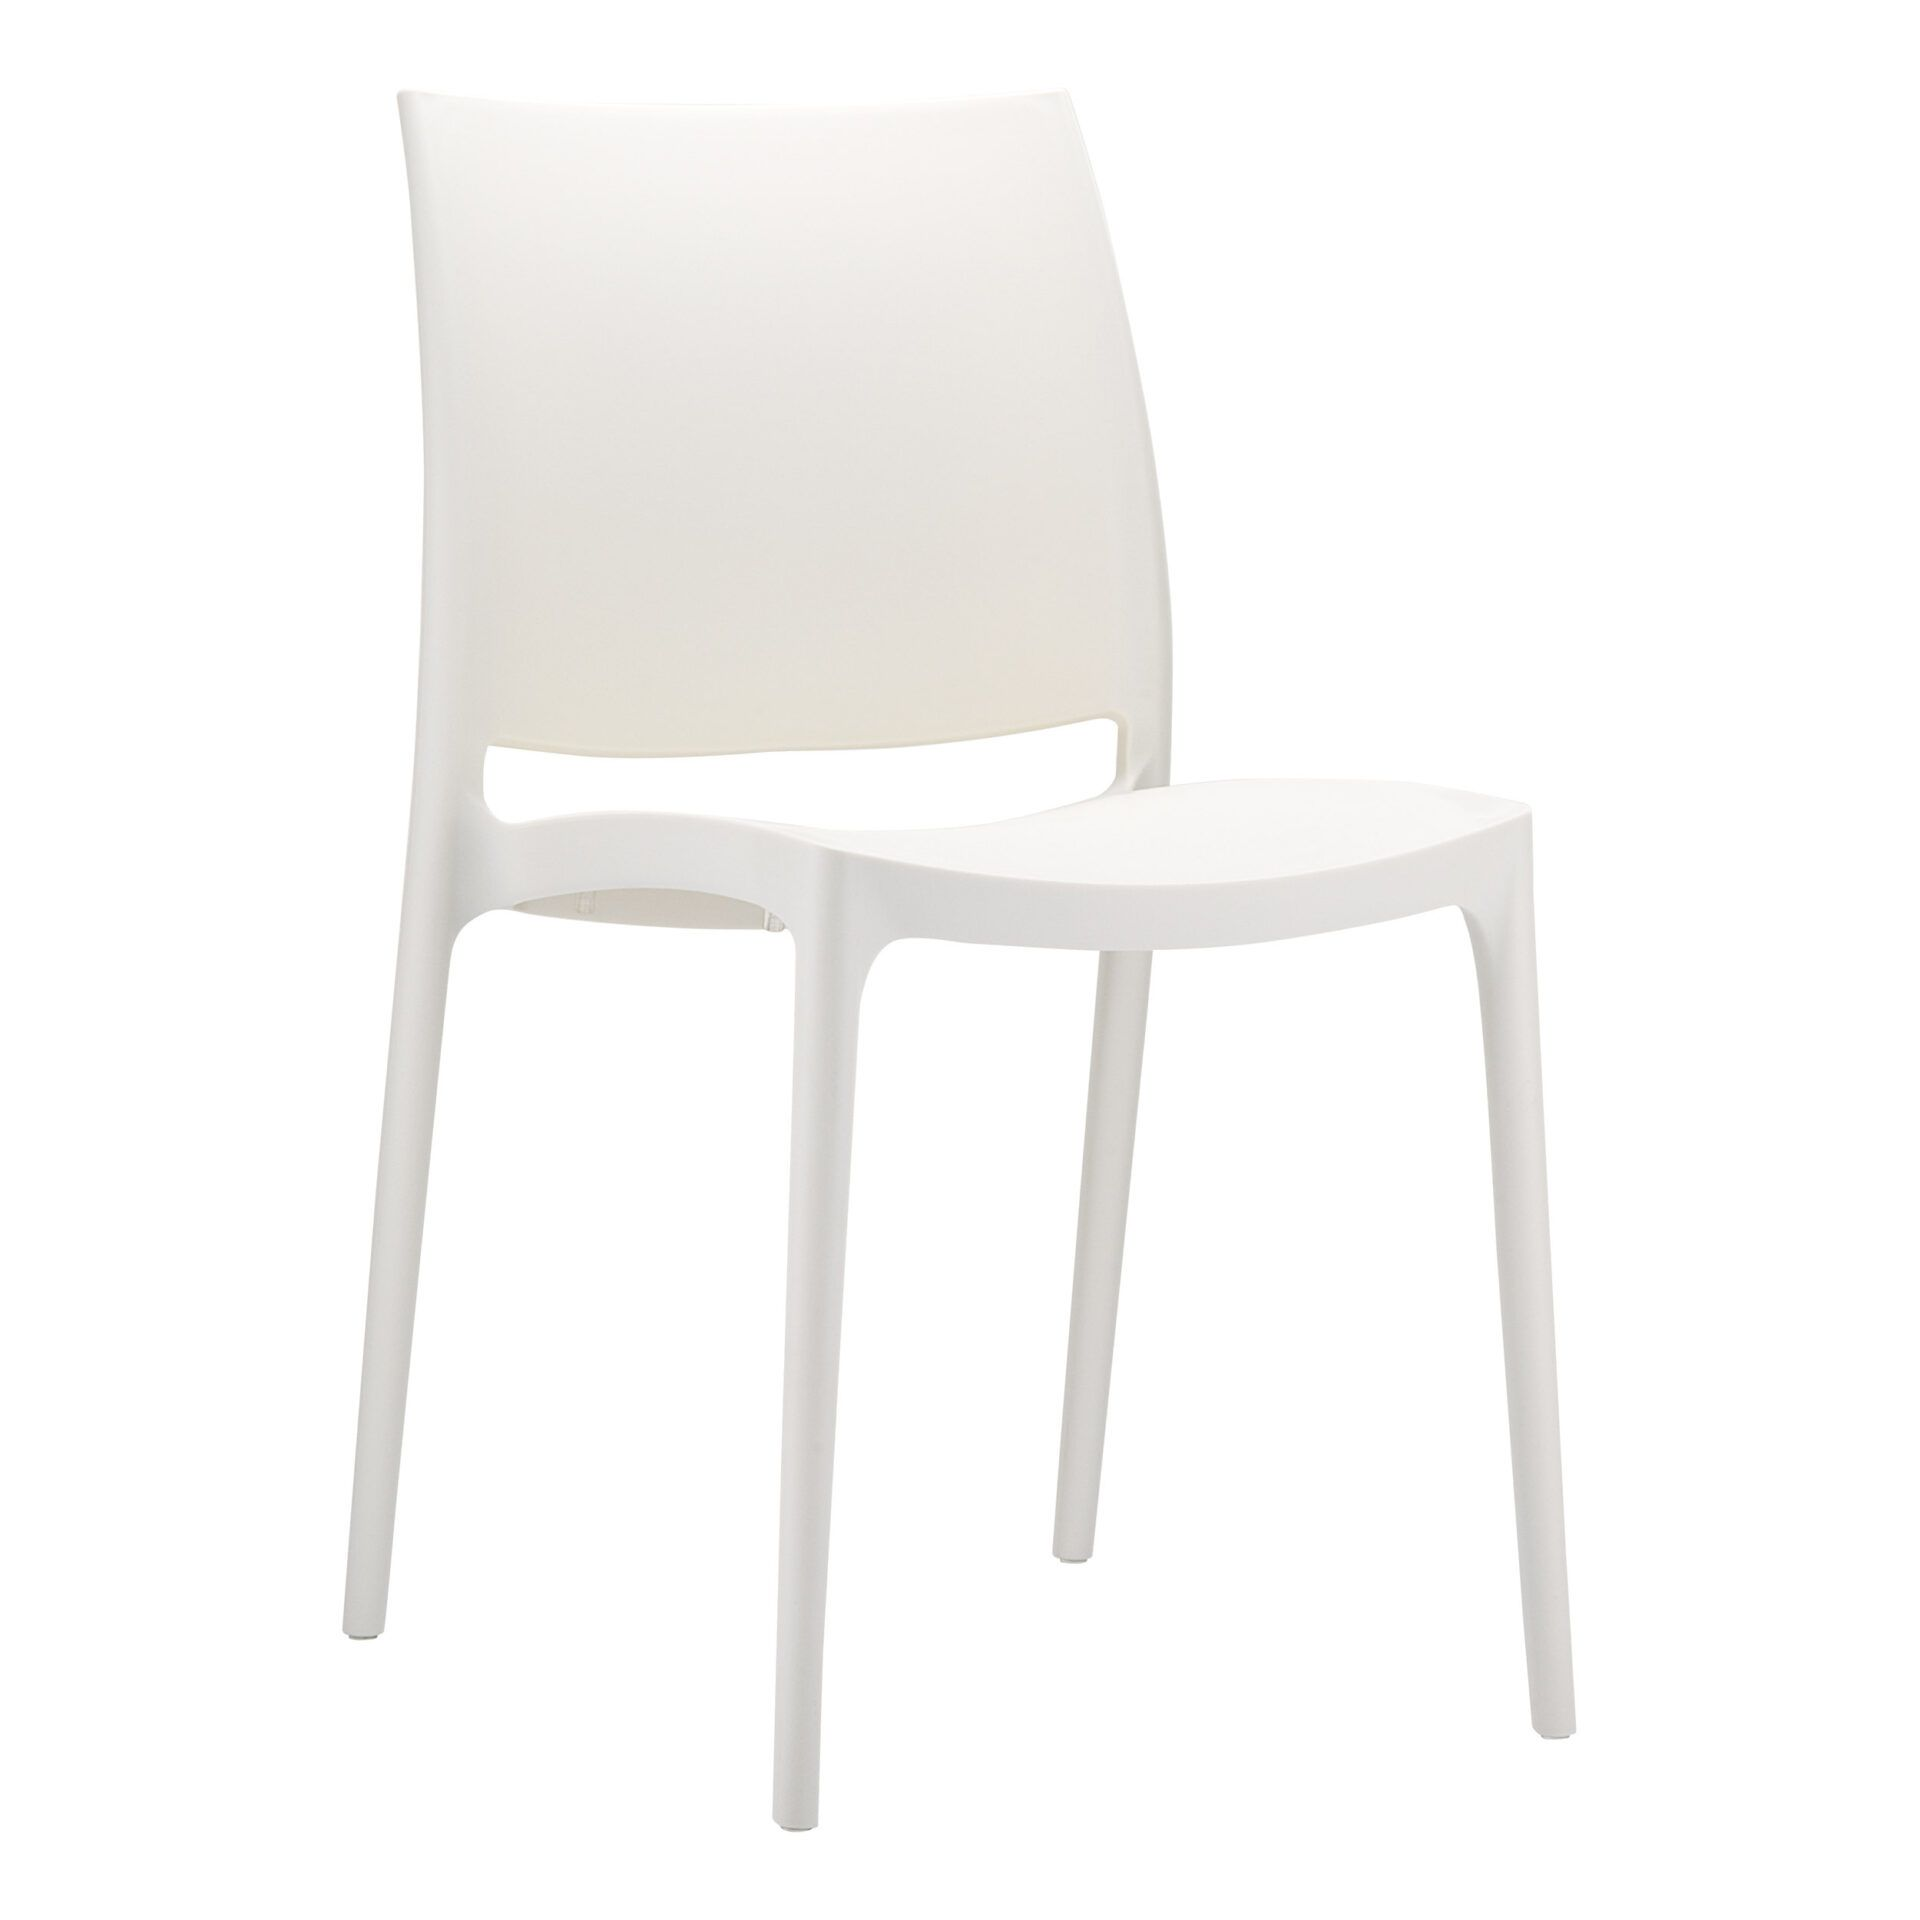 outdoor dining maya chair beige front side